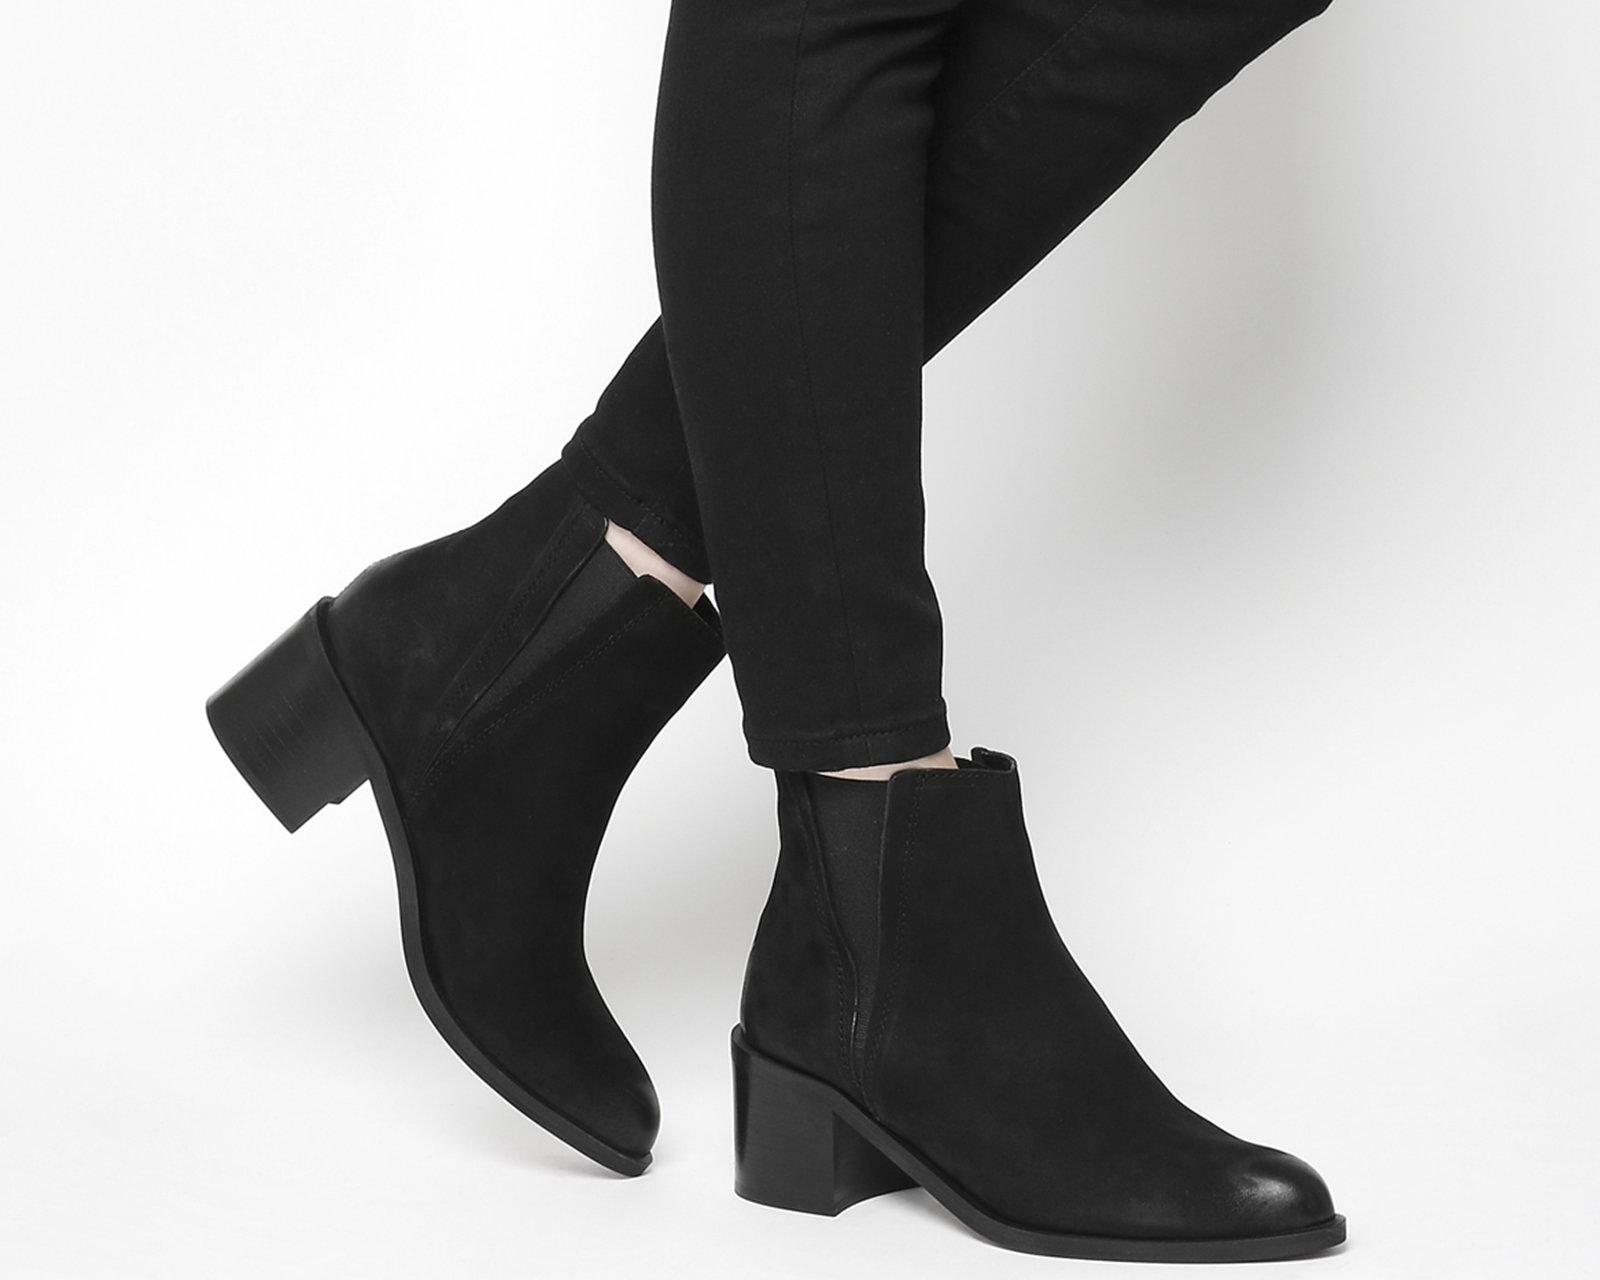 Sentinel Womens Office Black Suede Pull On Ankle Boots Size UK 5  Ex-Display d82ee10a275b